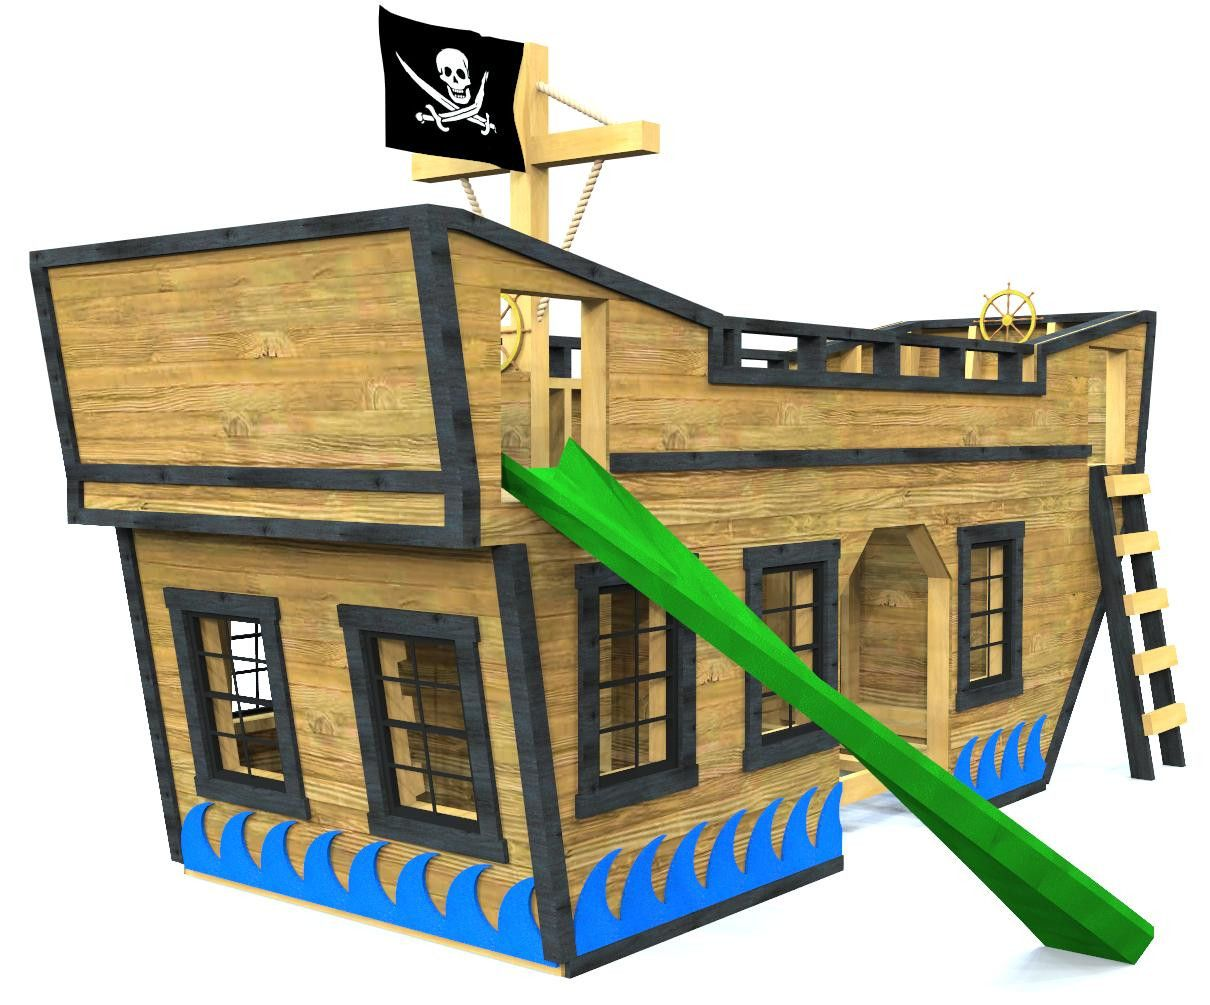 Plywood loft bed plans  Sea King Pirate Ship Bunk Bed Plan  boys room  Pinterest  Play